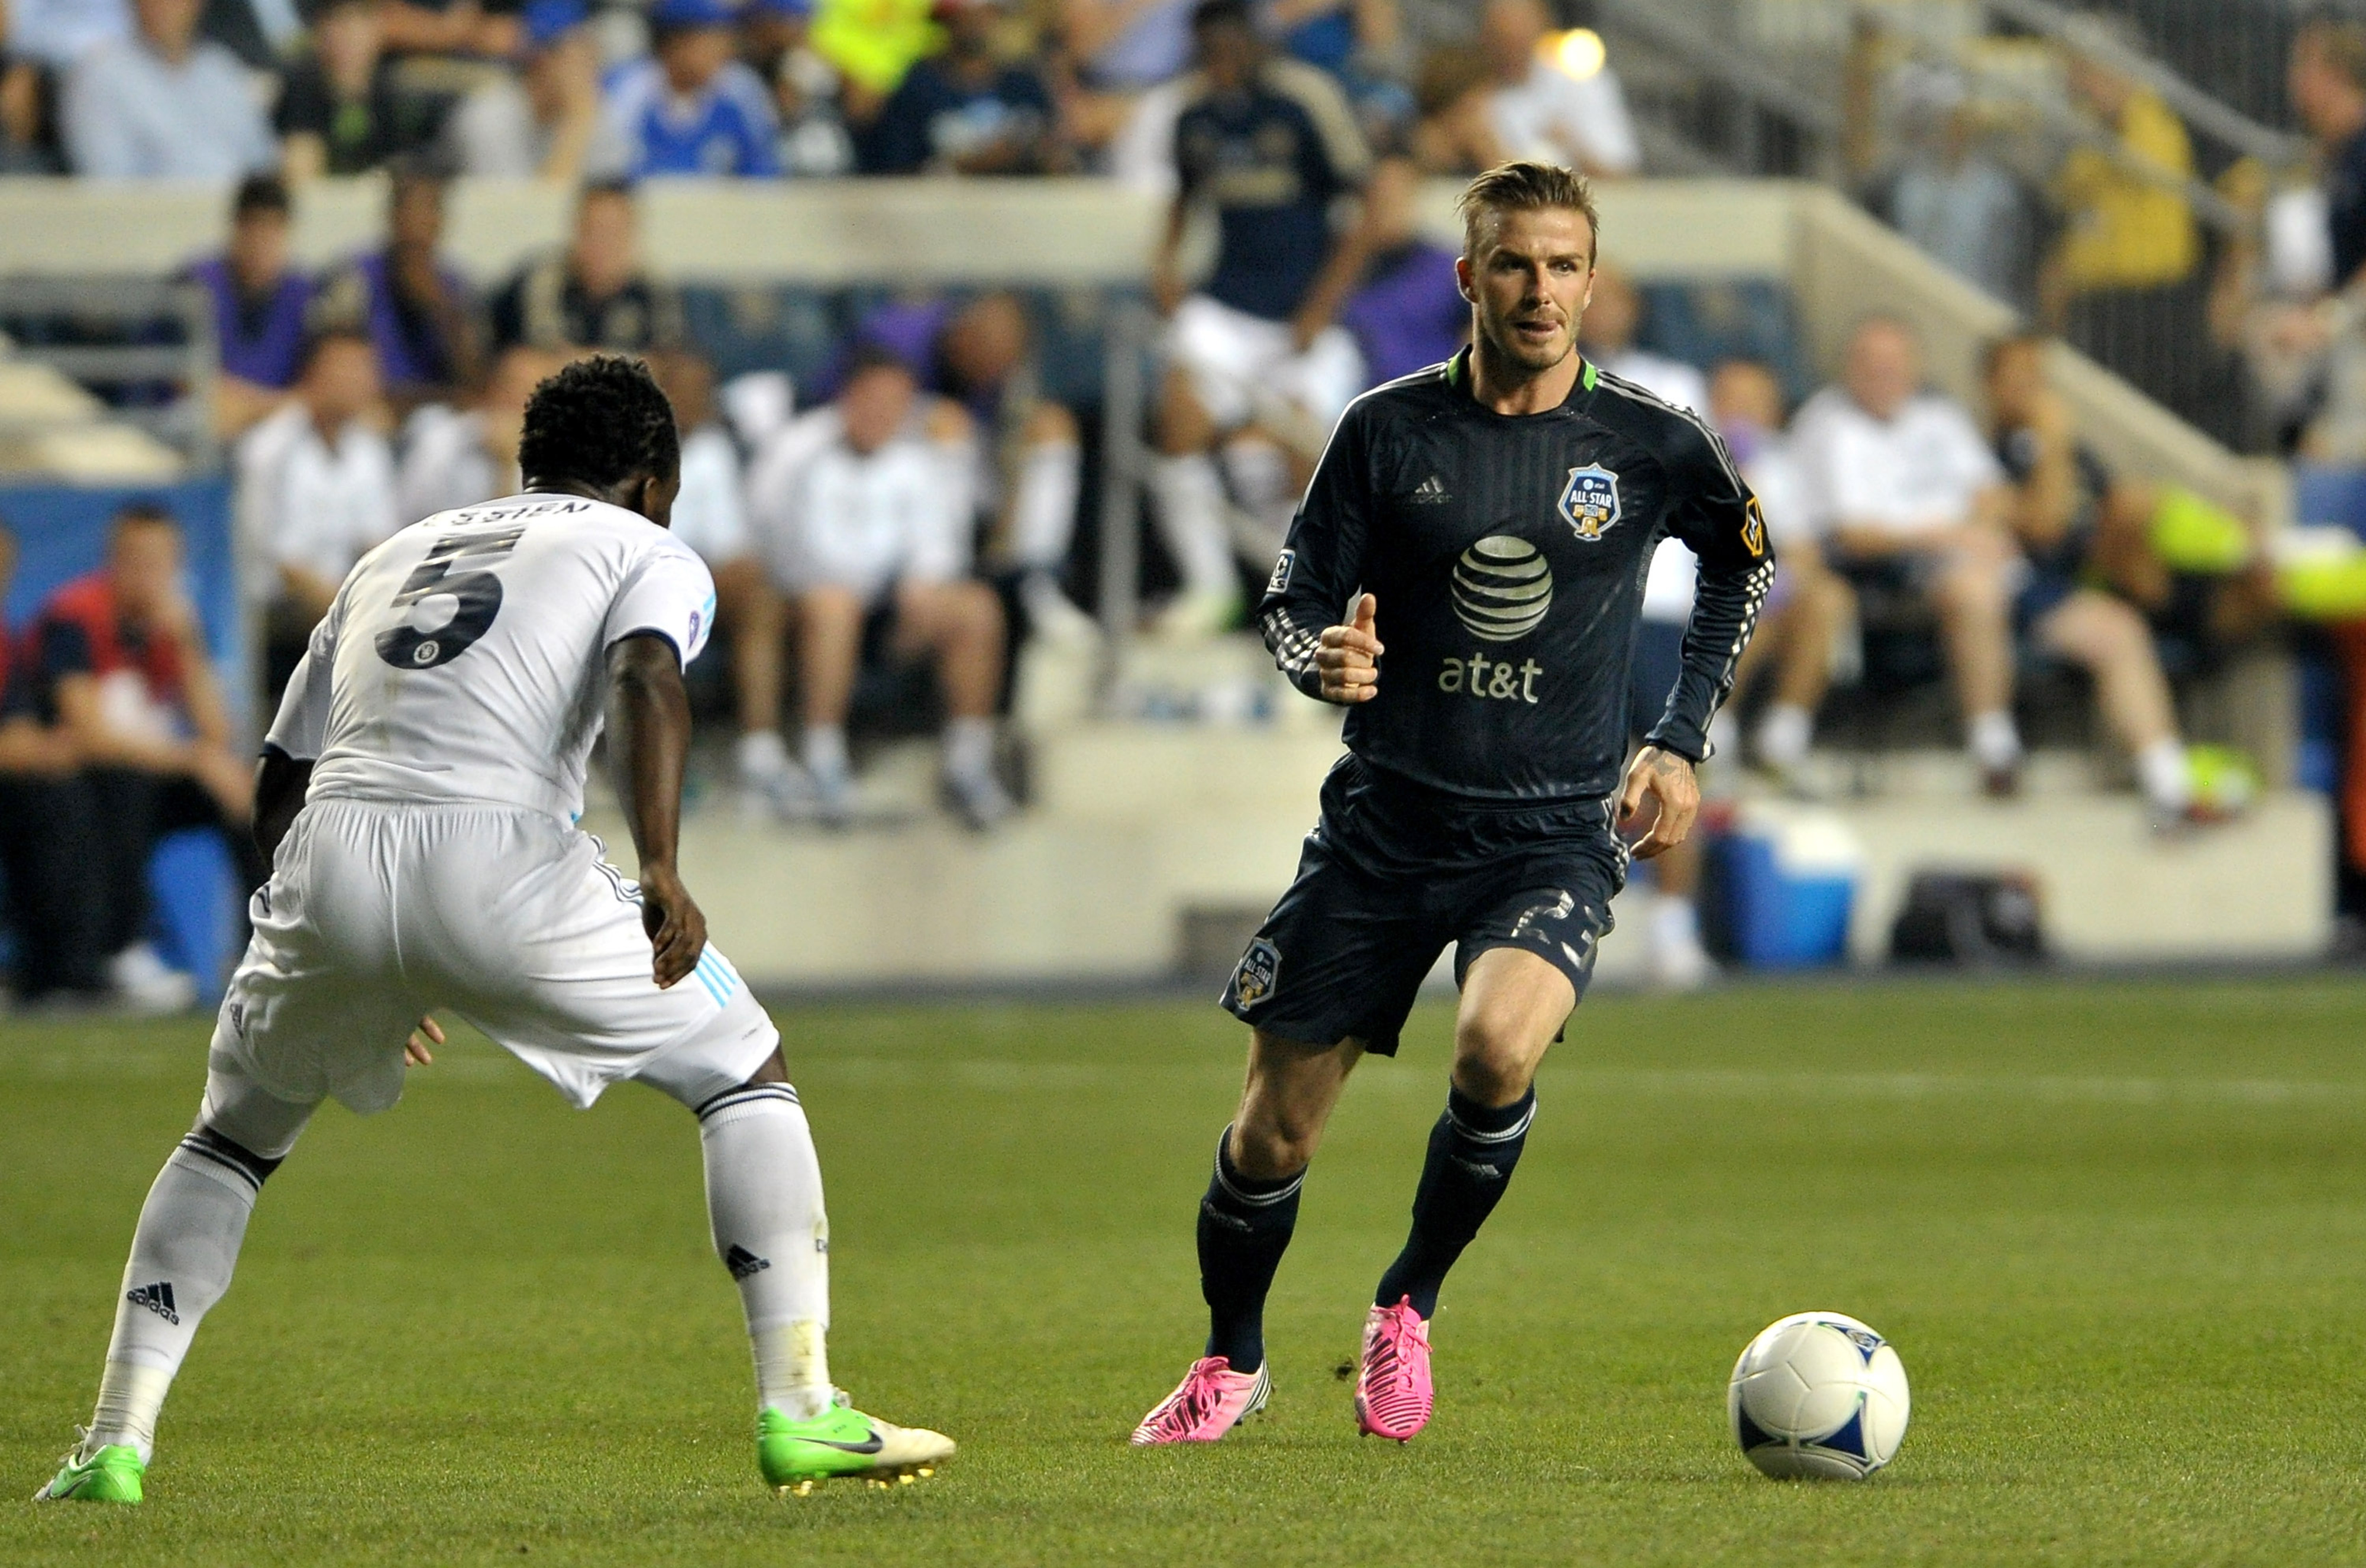 CHESTER, PA - JULY 25: David Beckham #23 of MLS All-Stars handles the ball against Michael Essien #5 of Chelsea during the 2012 AT&T MLS All-Star Game at PPL Park on July 25, 2012 in Chester, Pennsylvania.  (Photo by Drew Hallowell/Getty Images)